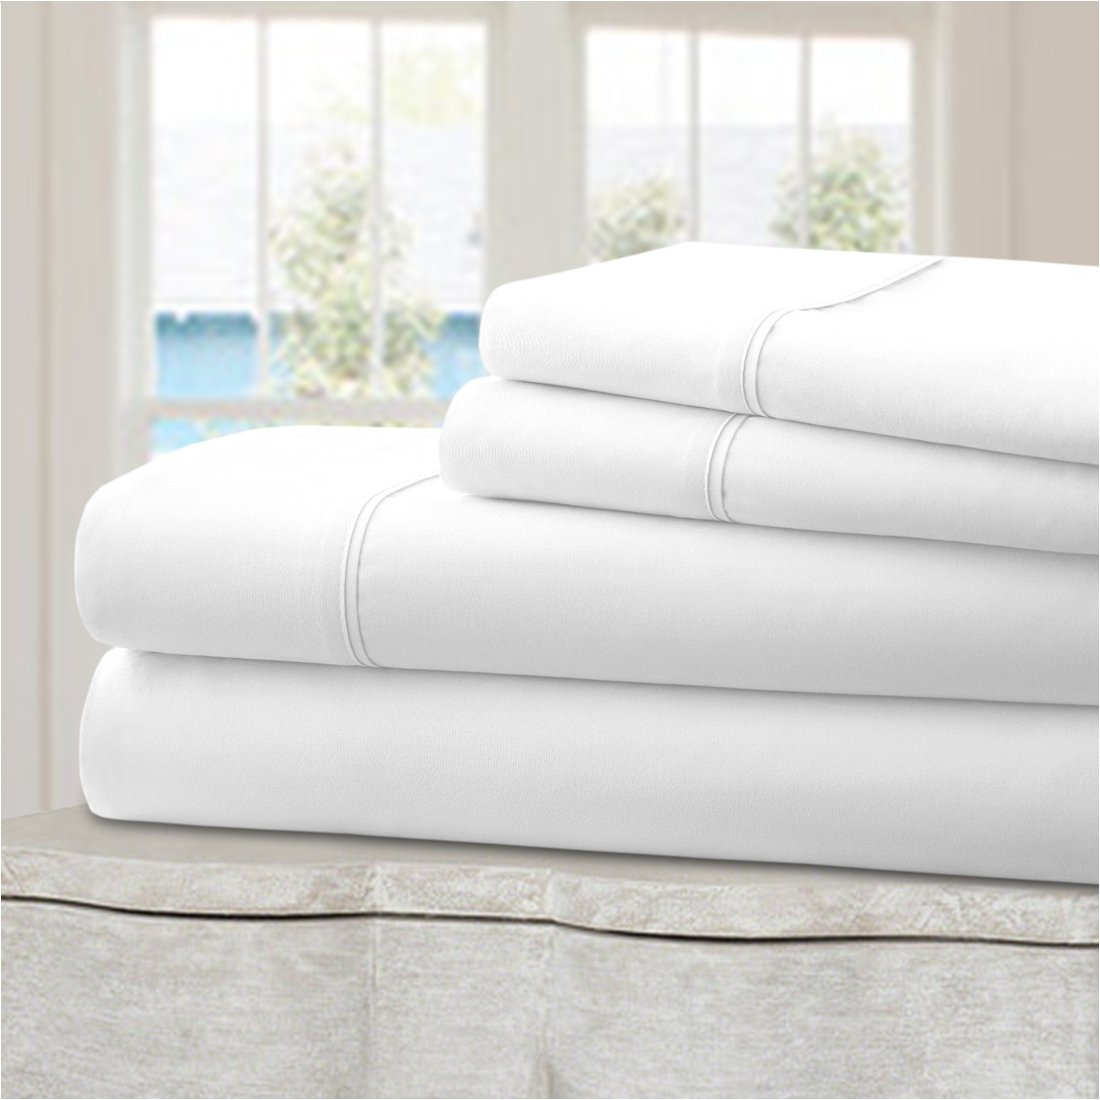 Ideal Linens Bed Sheet Set - Velvety Double Brushed Microfiber Bedding - Hotel Quality